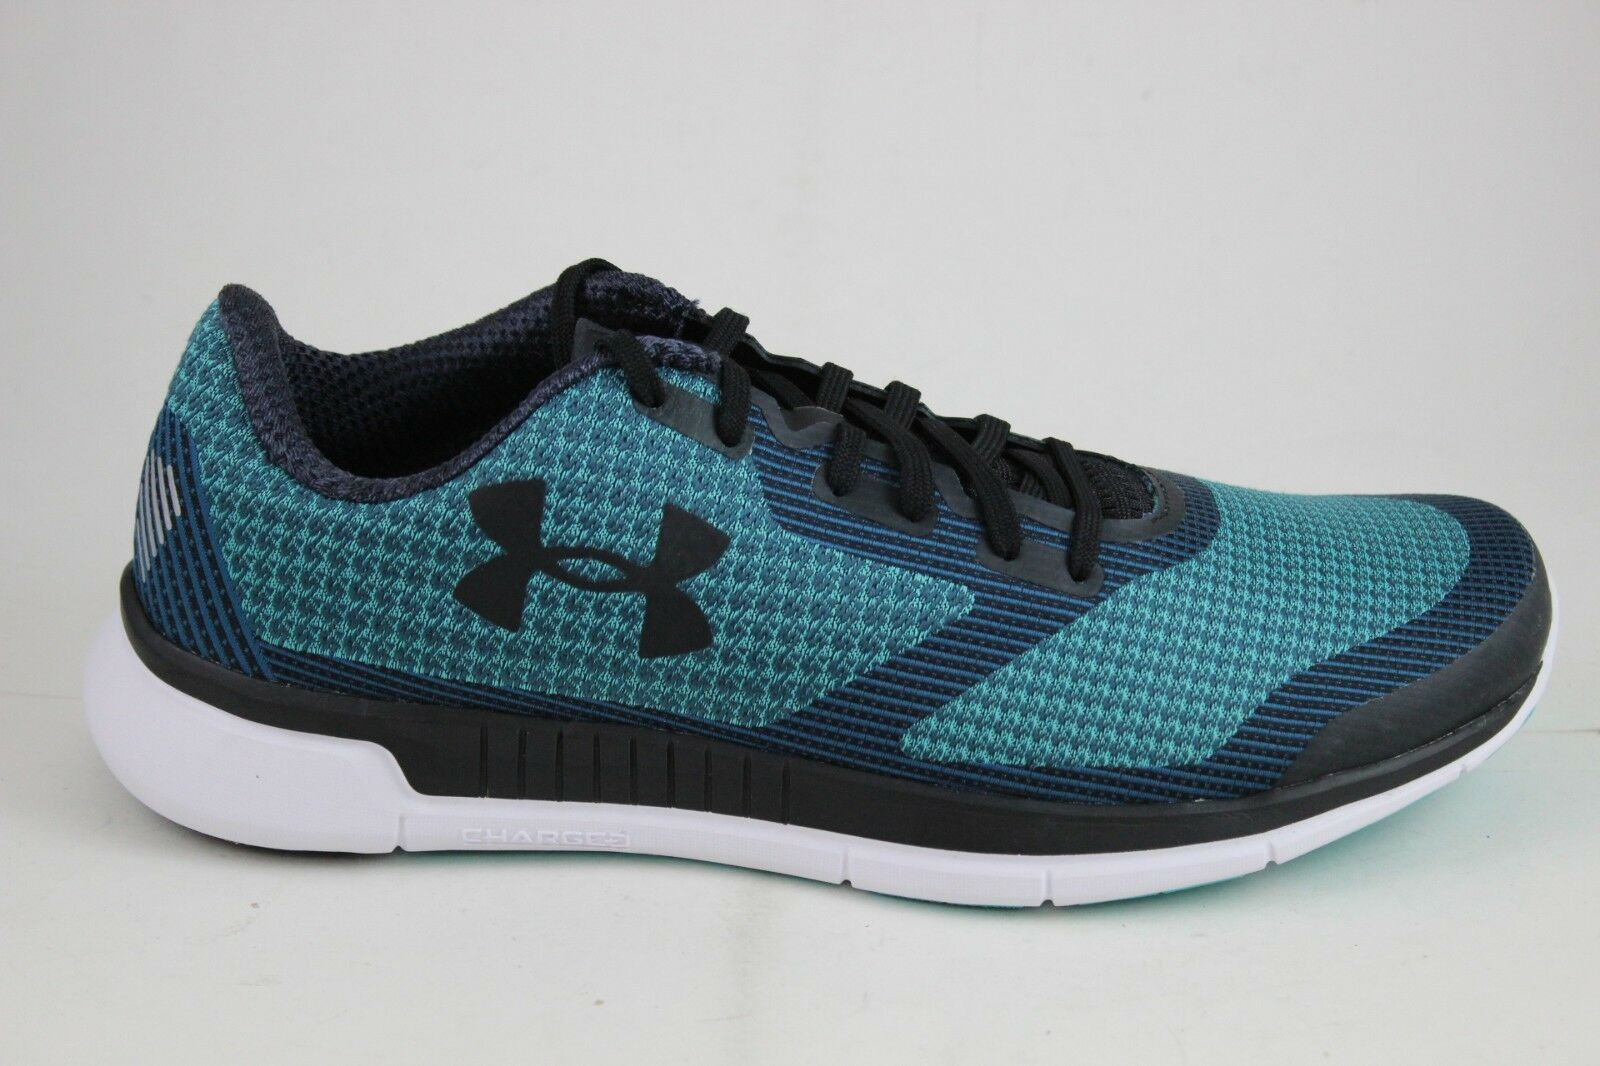 the latest 4a1ad e7483 Under Armour Damen Geladen Geladen Geladen Lightning 1285494-369 Neptun  Weiß Schwarz Neu 49cd44